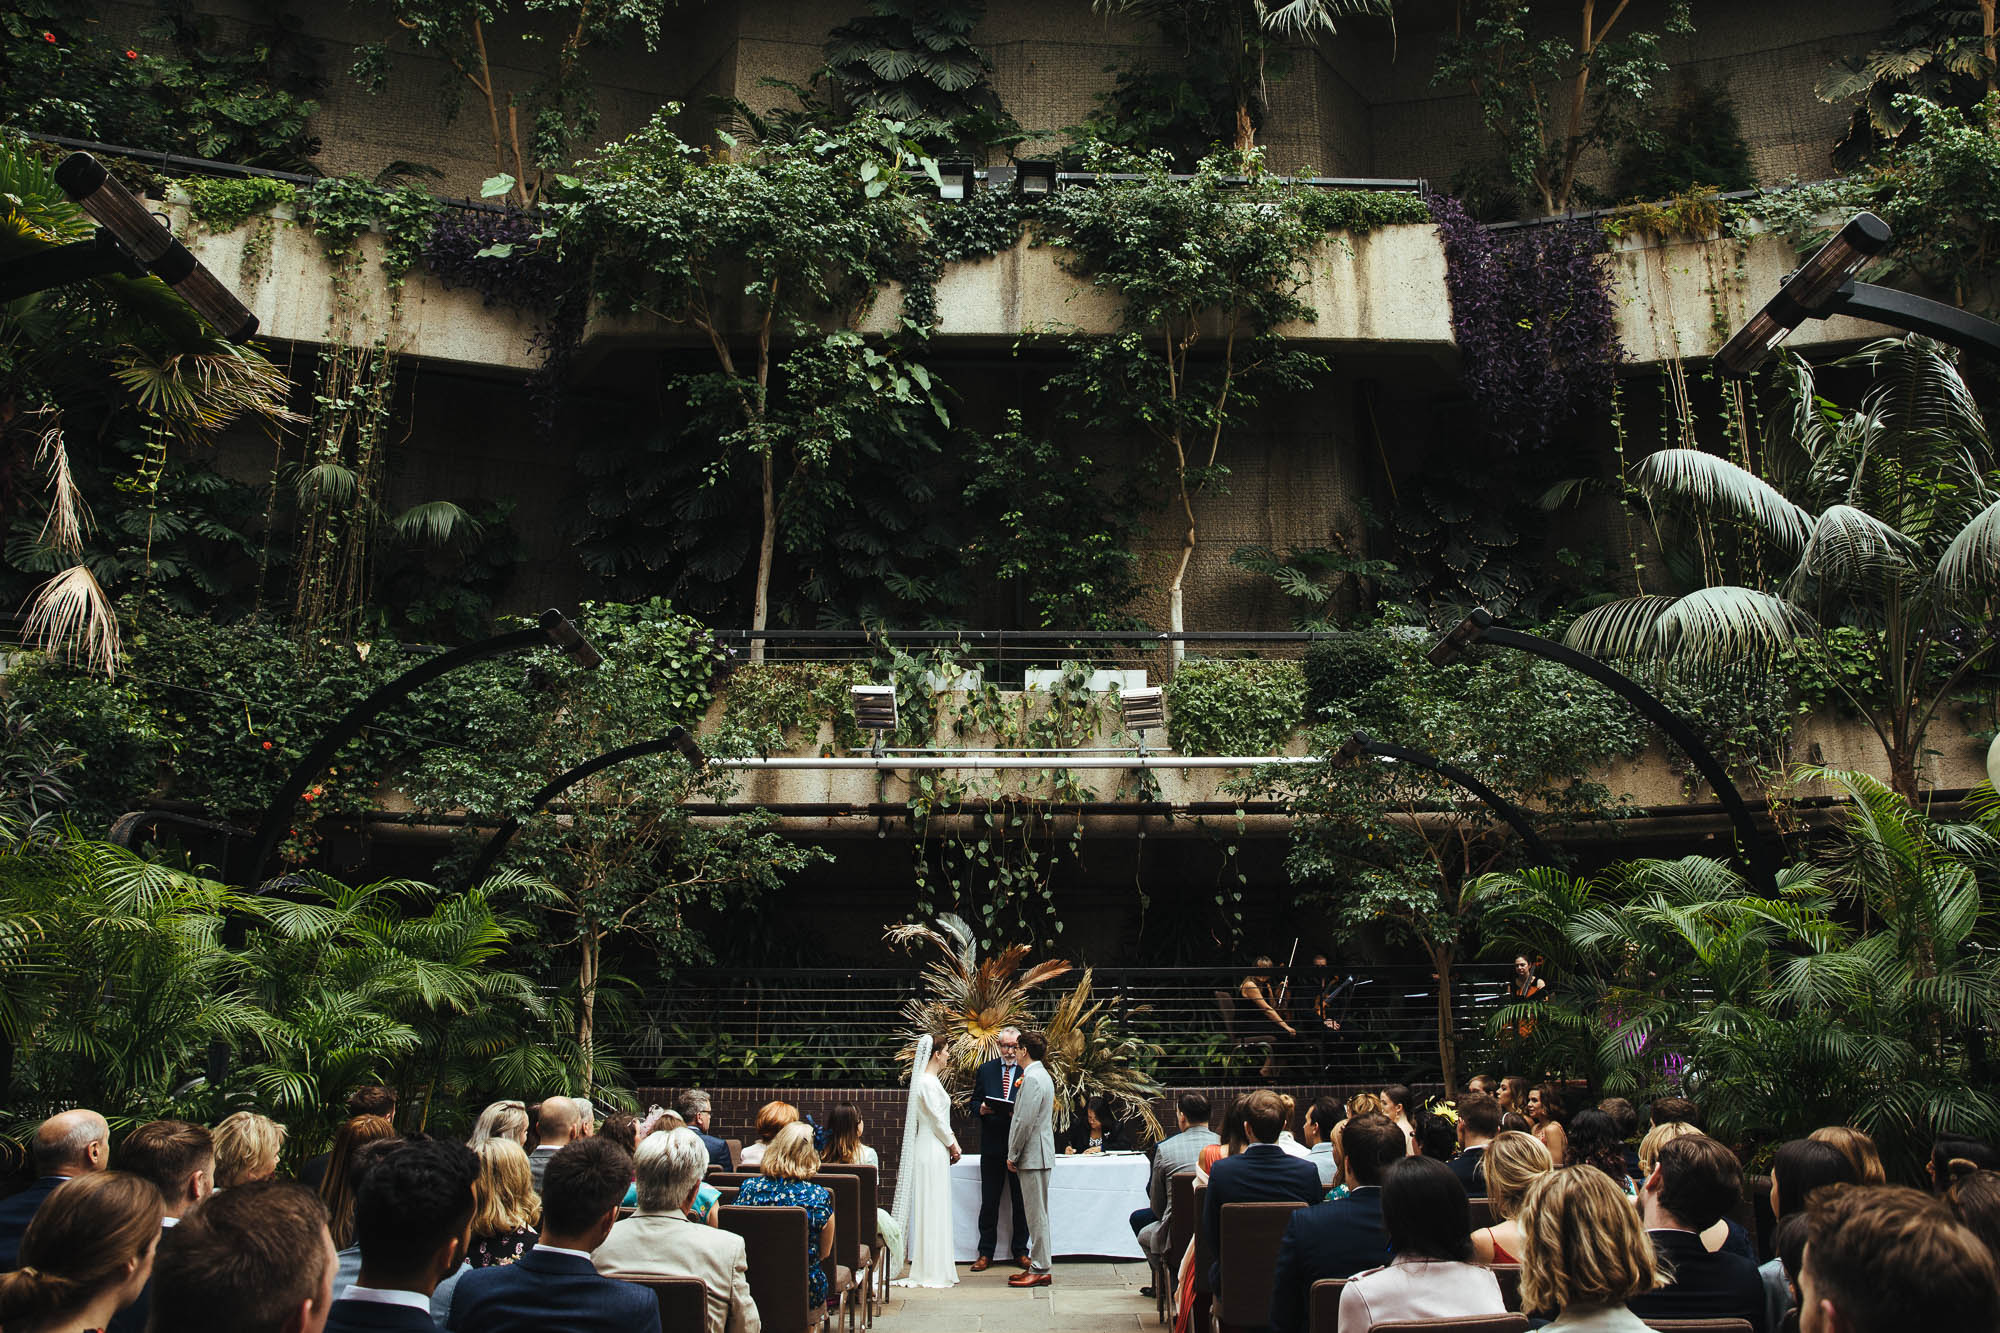 Wedding at The Barbican Conservatory